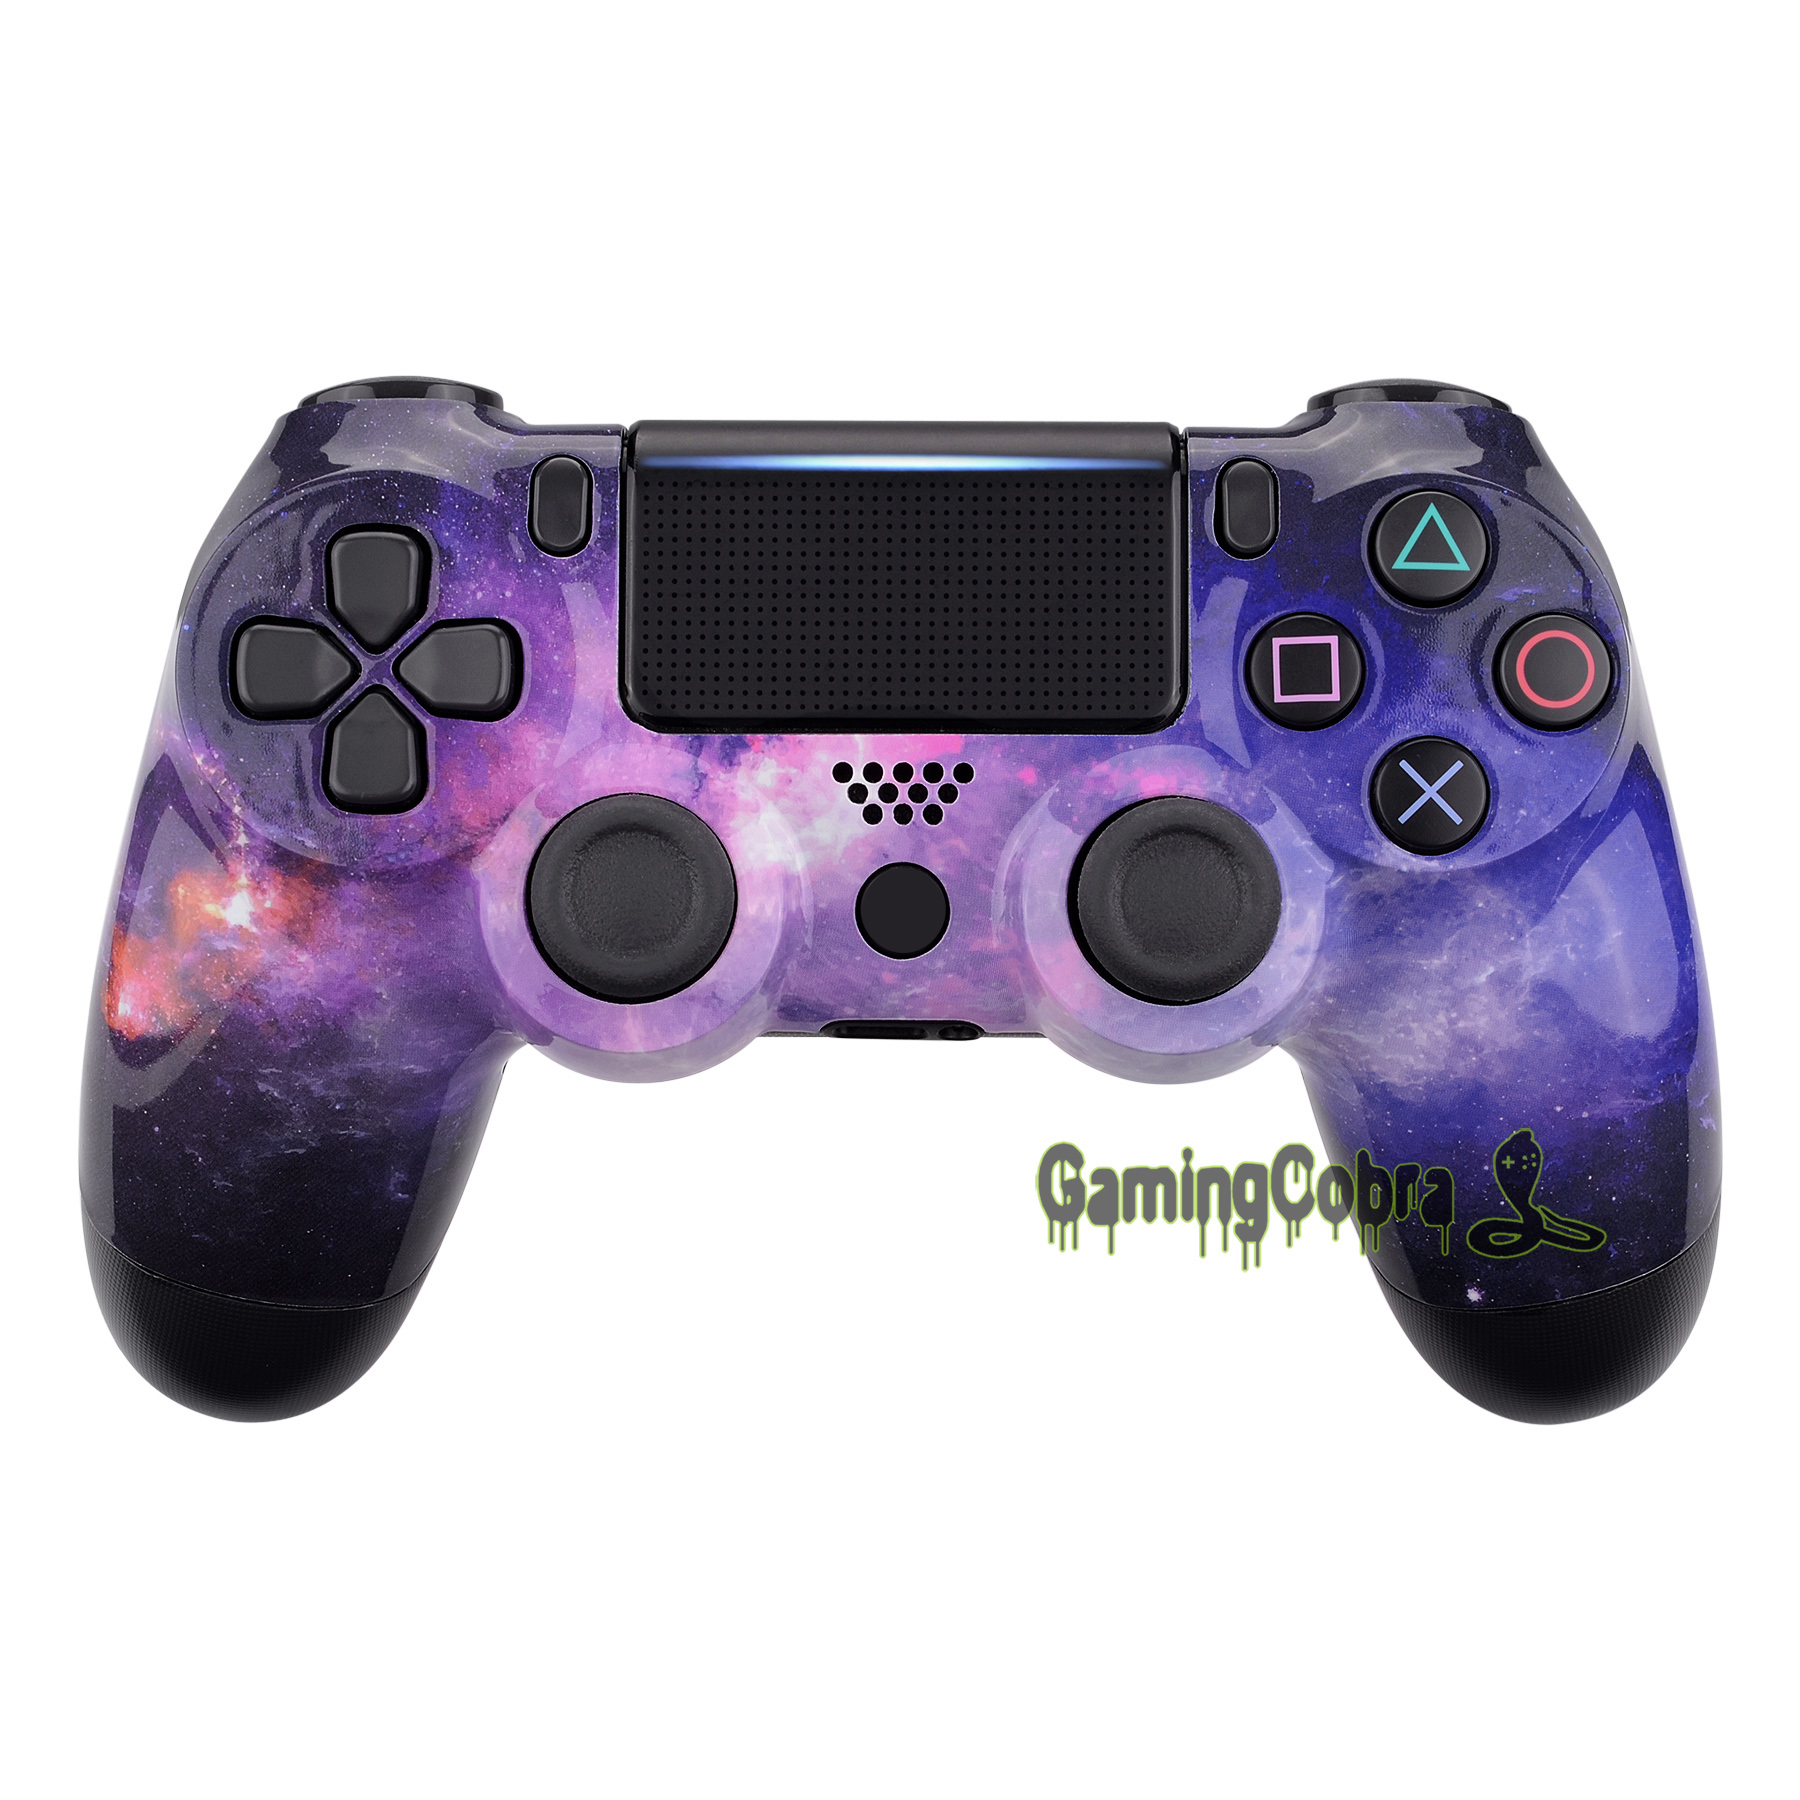 Nubula Galaxy Design Replacement Front Shell Faceplate Cover For PS4 Pro Slim Controller JDM-040 JDM-050 JDM-055 - SP4FT27